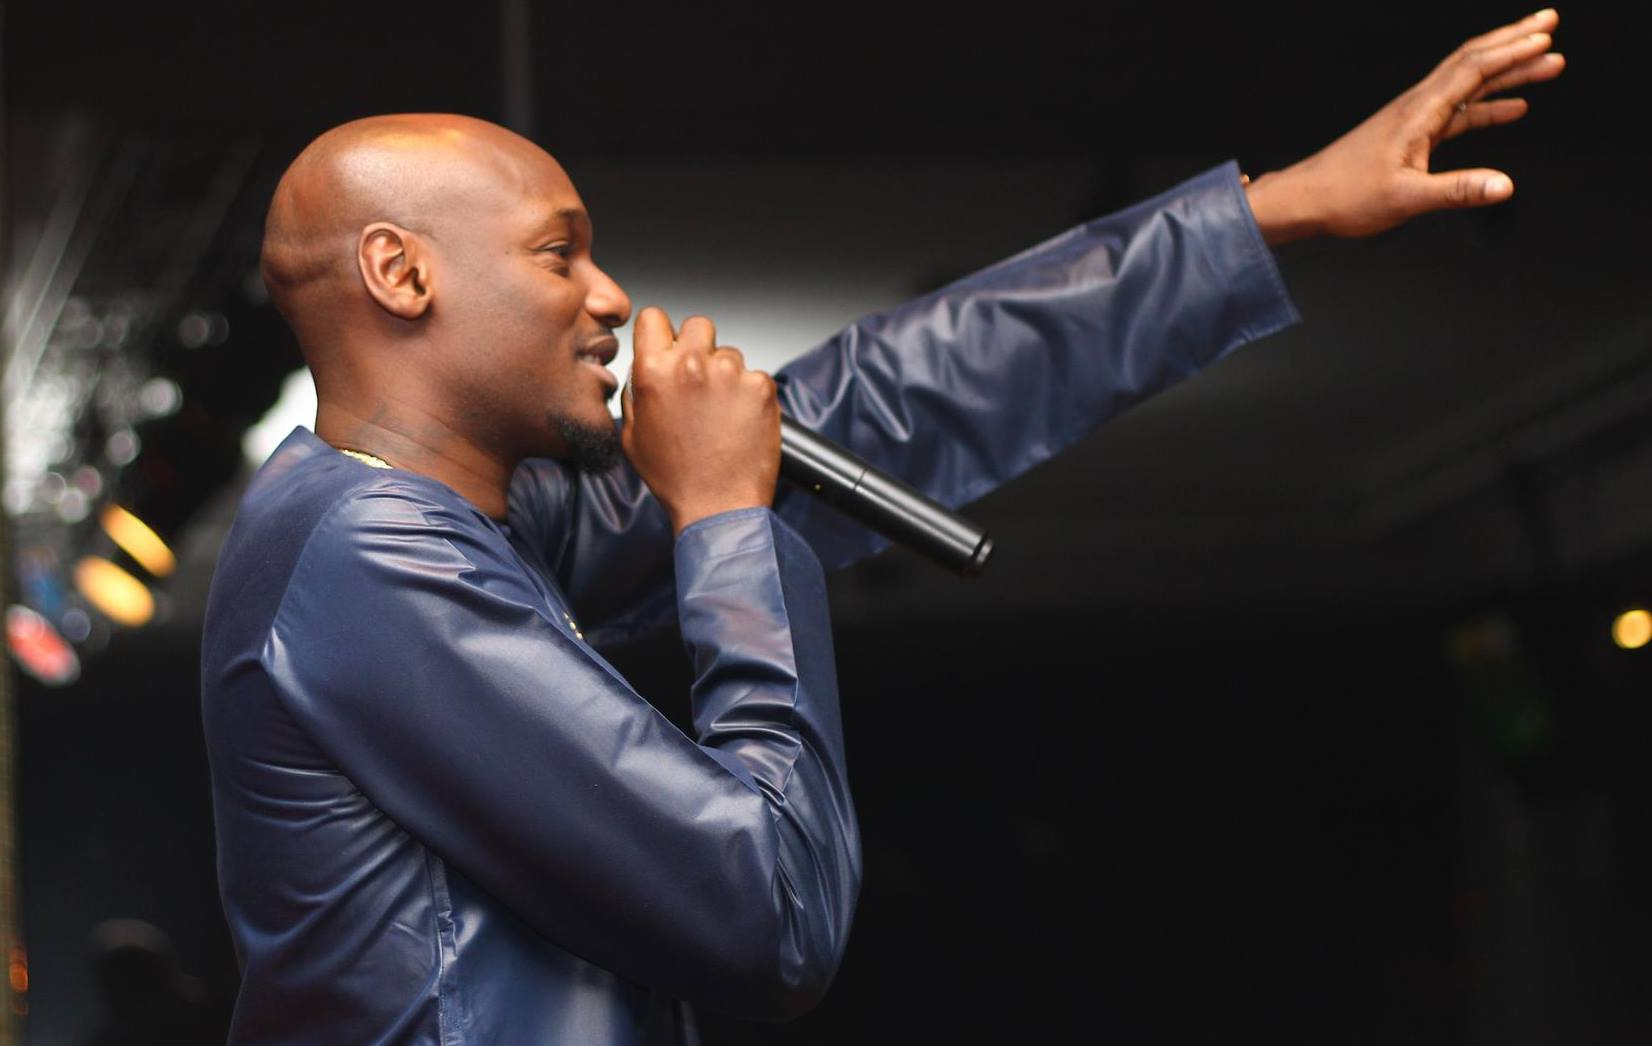 2Baba gives men sex advice during his Buckwyld n Breathless Performance